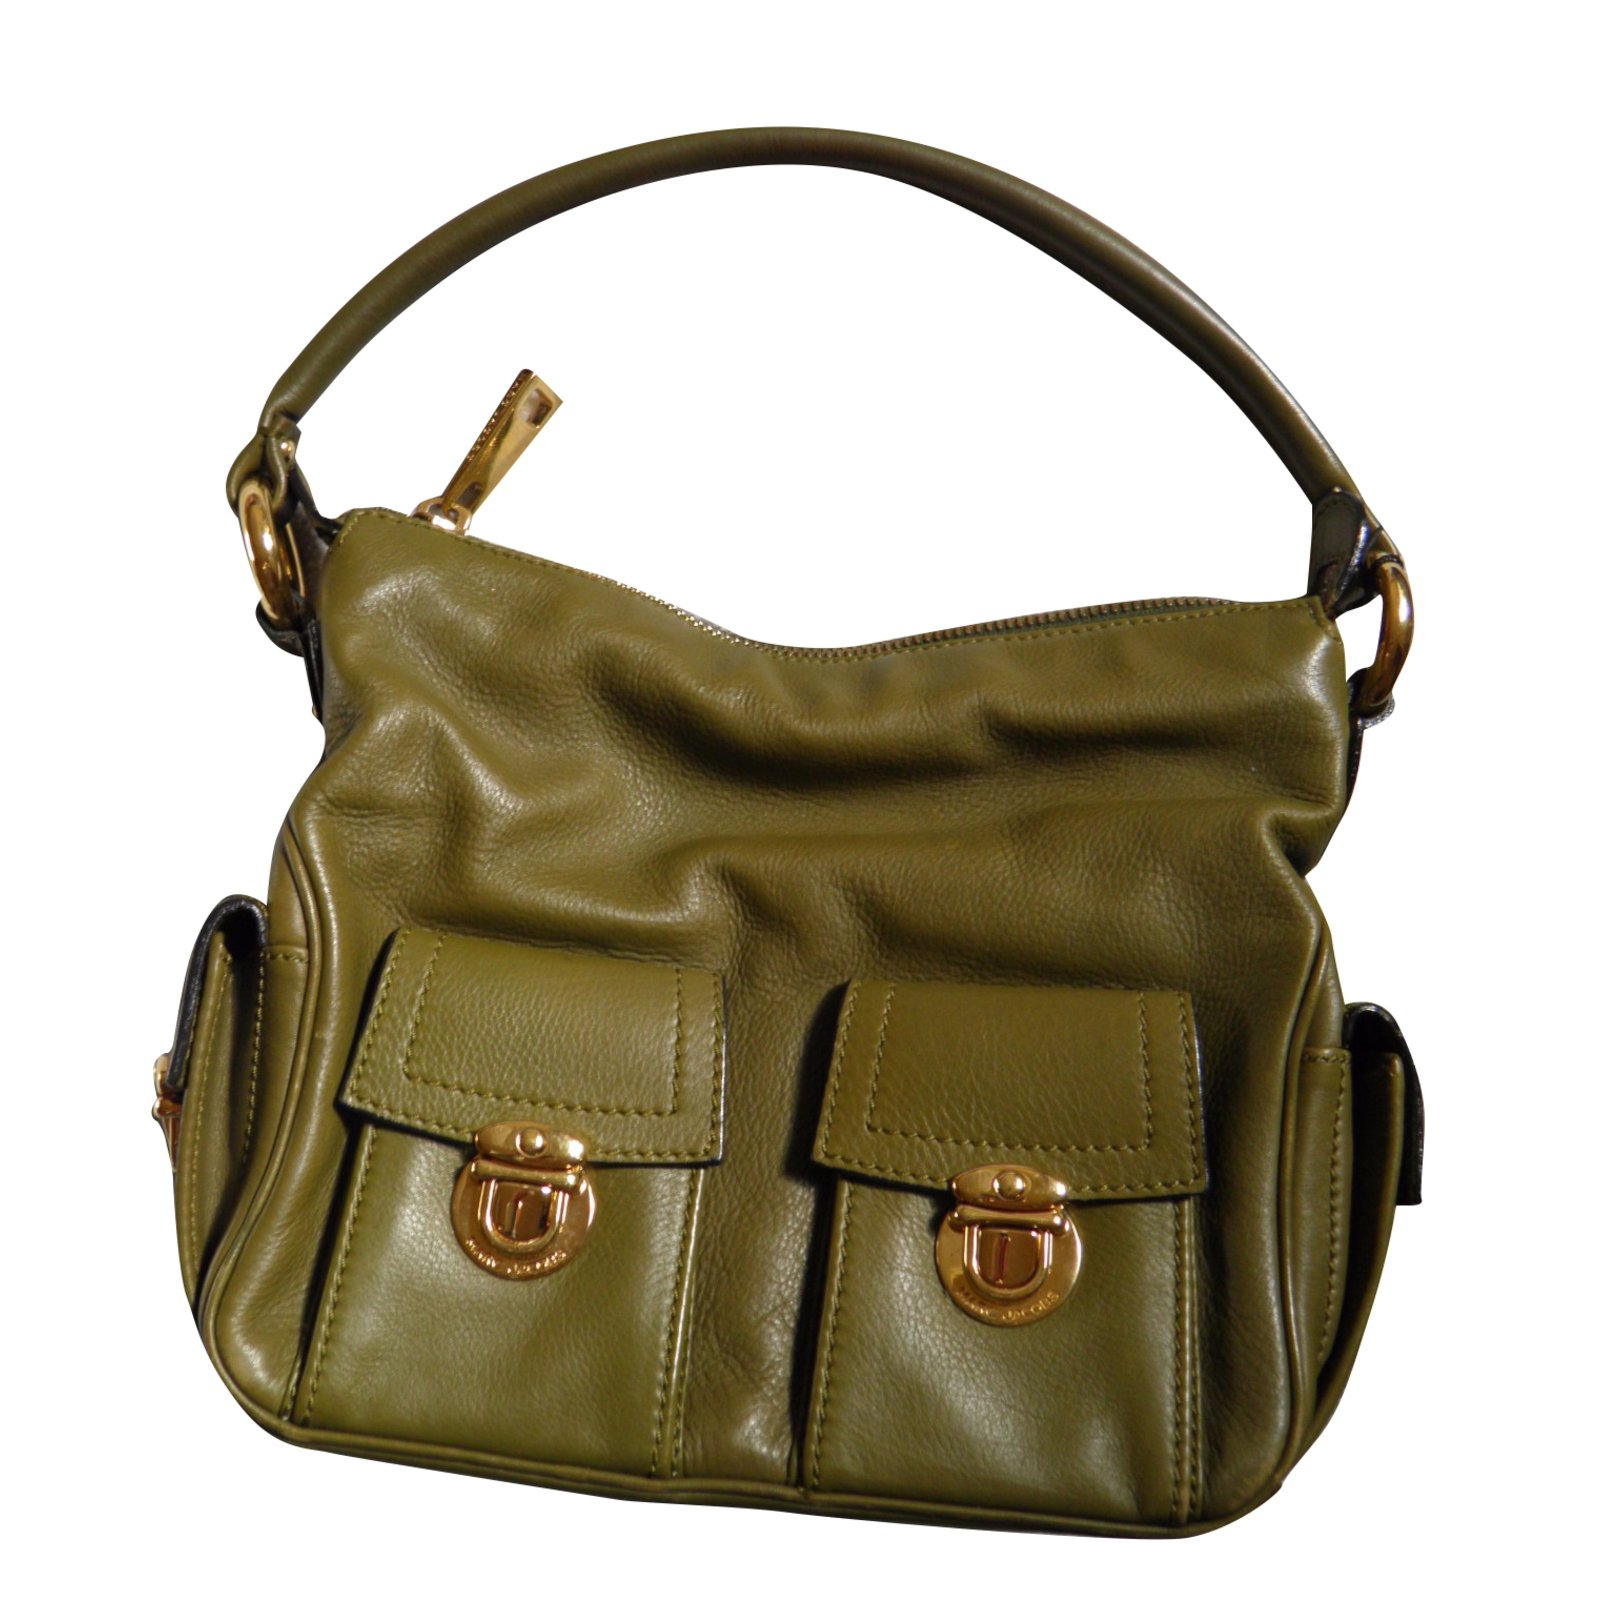 Marc Jacobs Tote Handbags Leather Olive